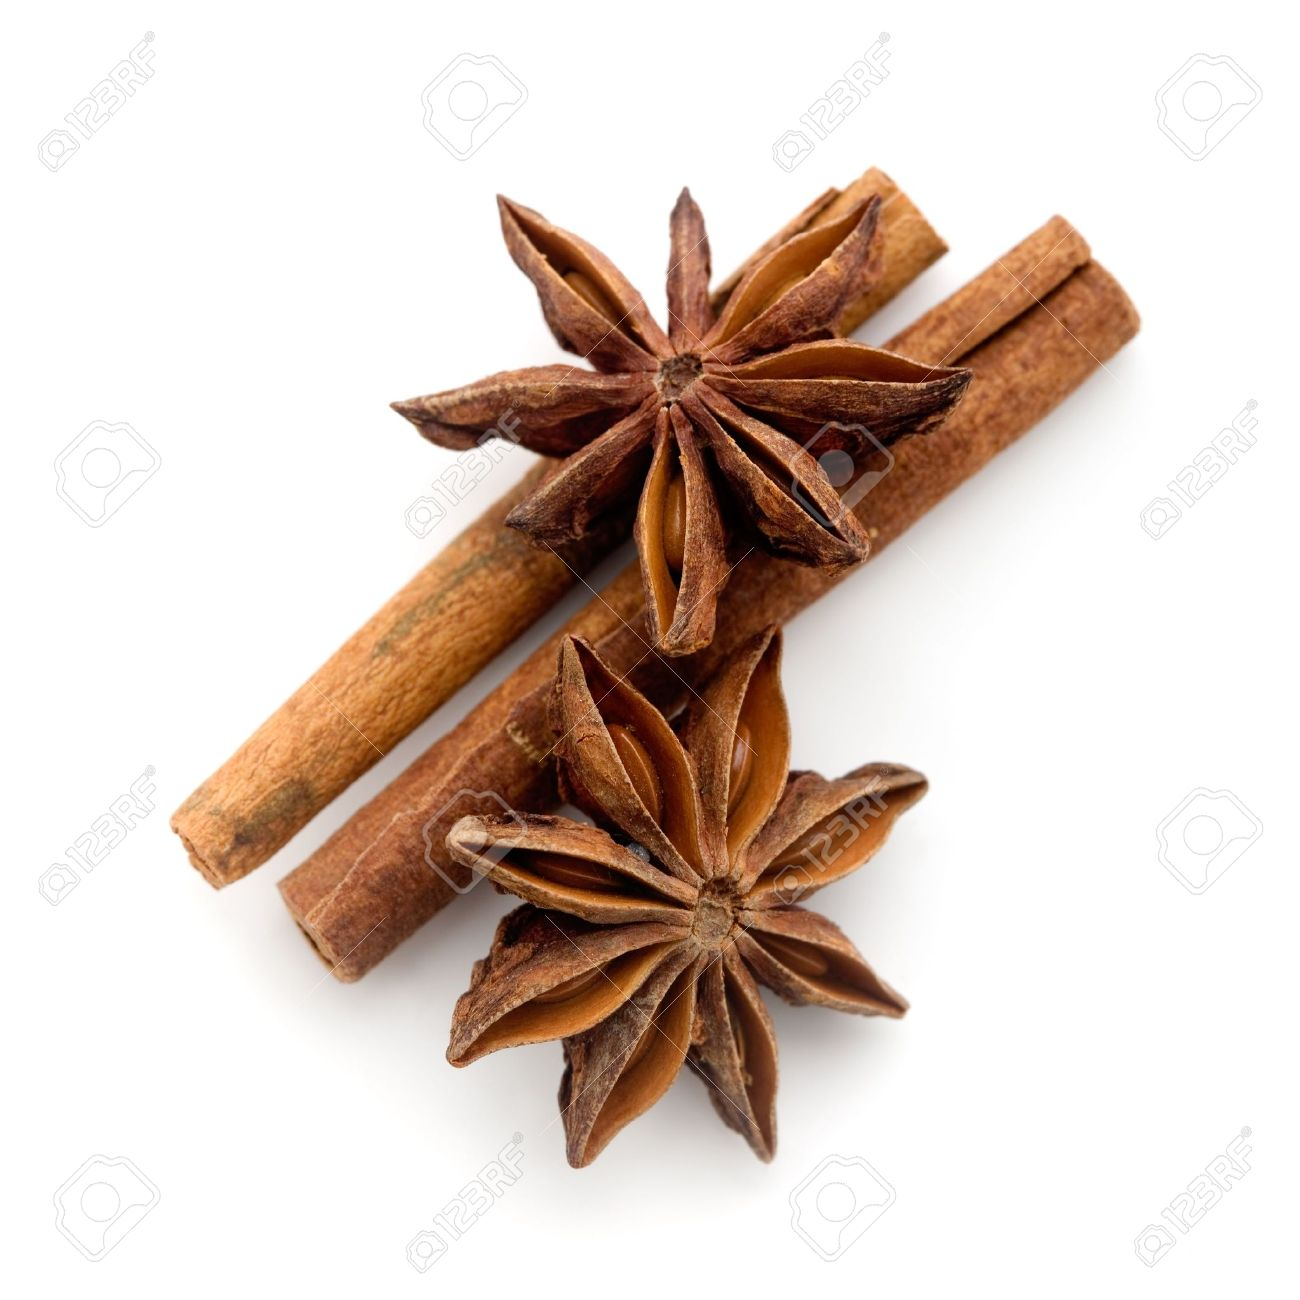 star anis and cinnamon stick on white stock photo picture and